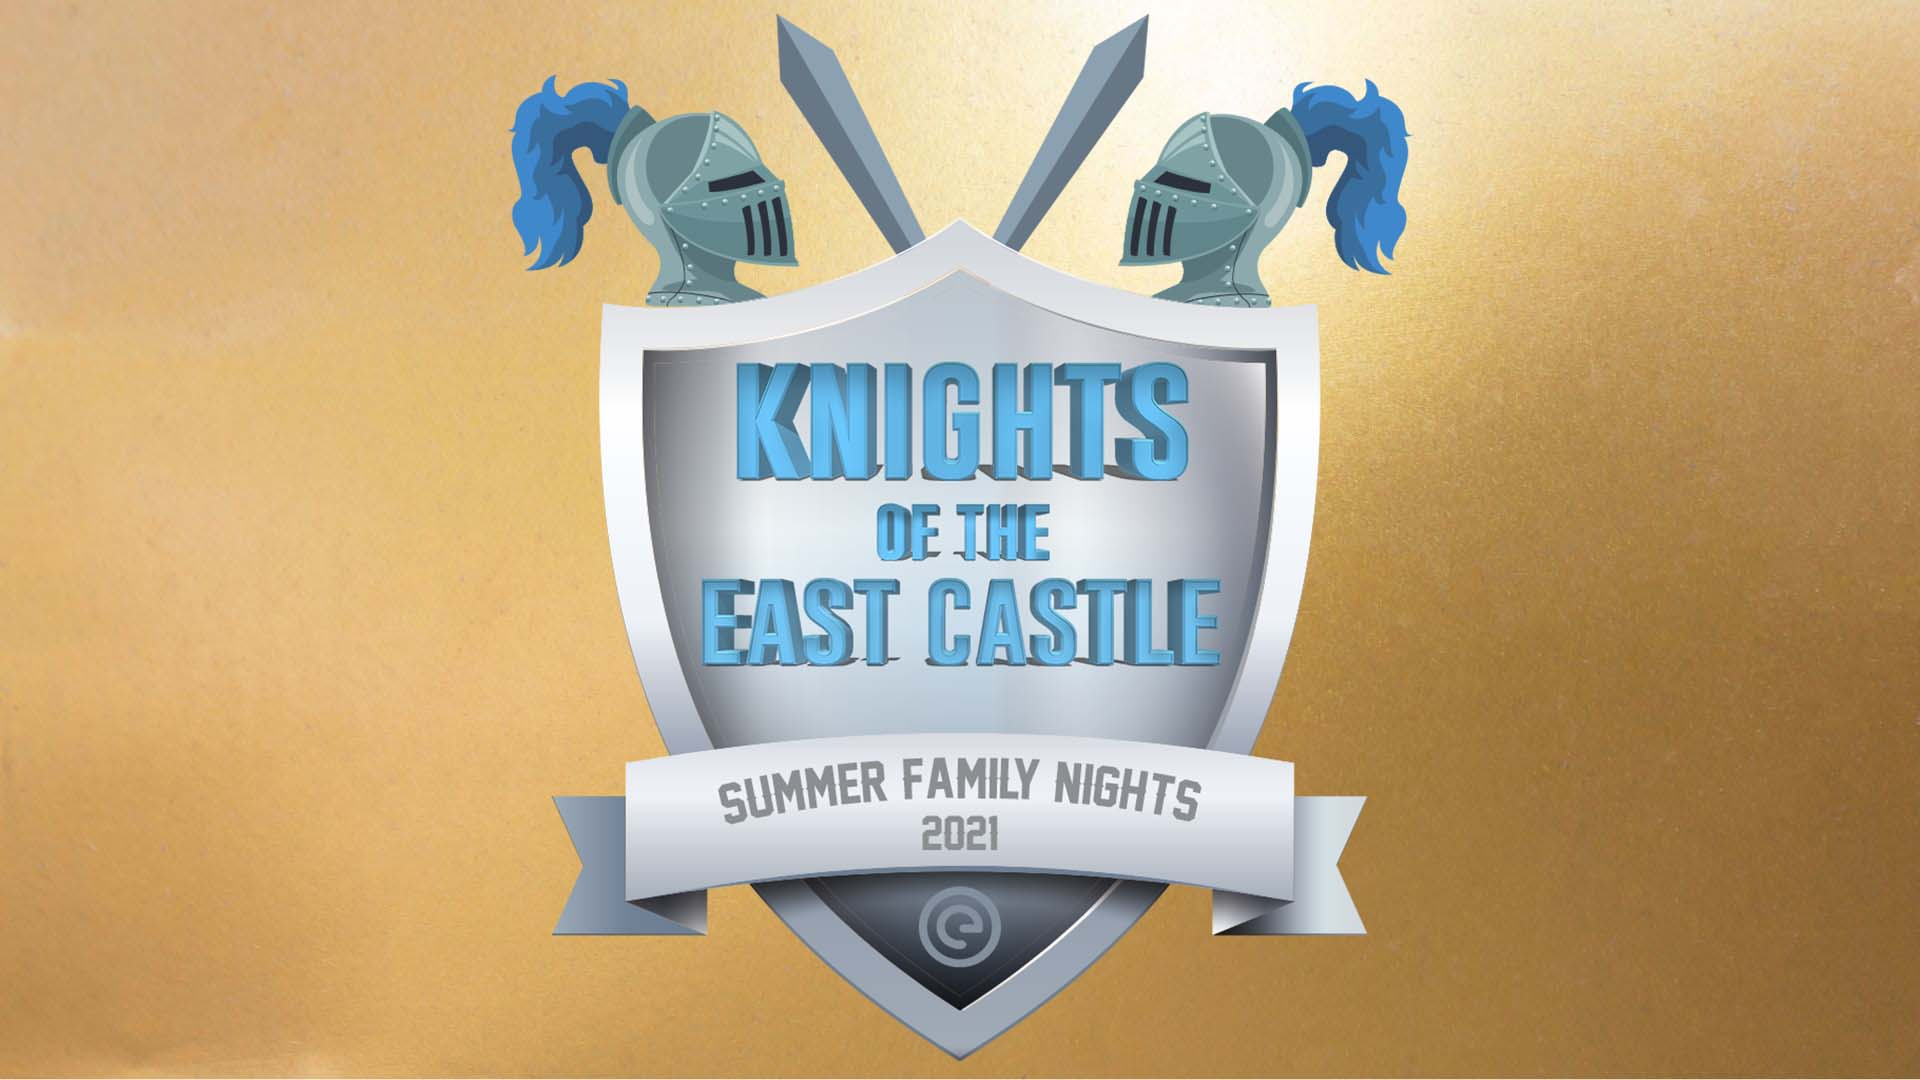 Summer Family Nights - Knights of the East Castle